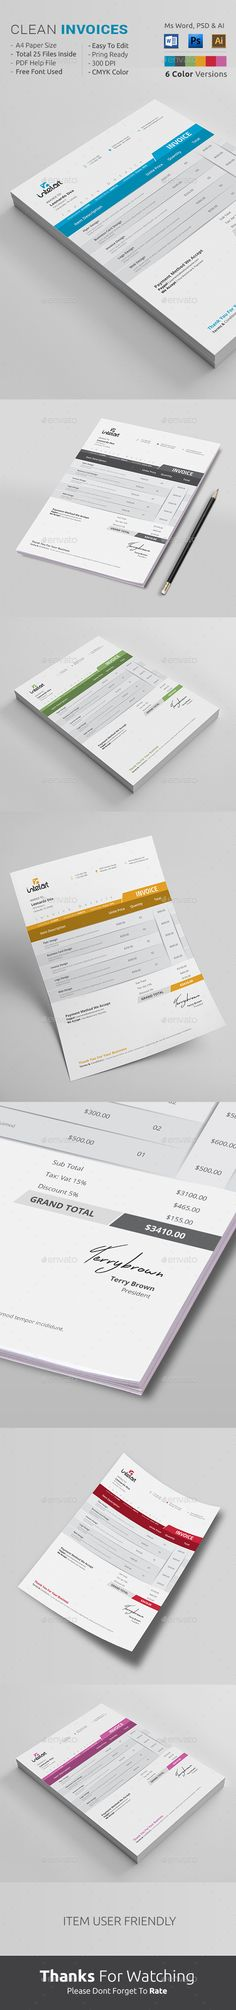 20 Creative Invoice \ Proposal Template Designs Template - billing formats